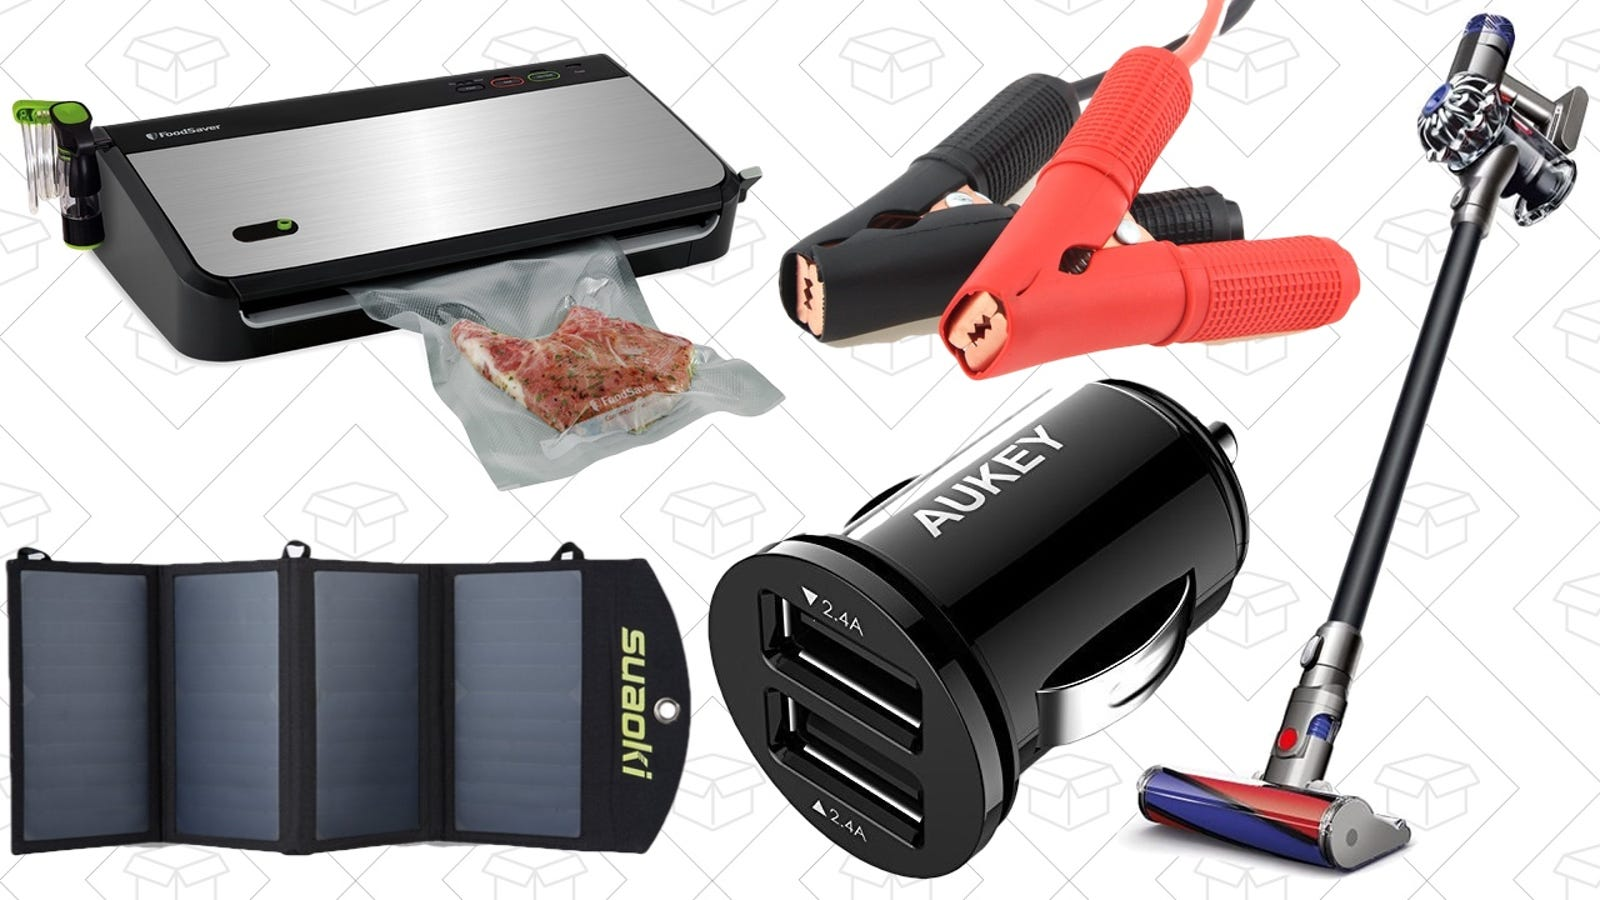 Todays best deals your favorite car charger discounted food saver todays best deals your favorite car charger discounted food saver dyson v6 and more fandeluxe Choice Image